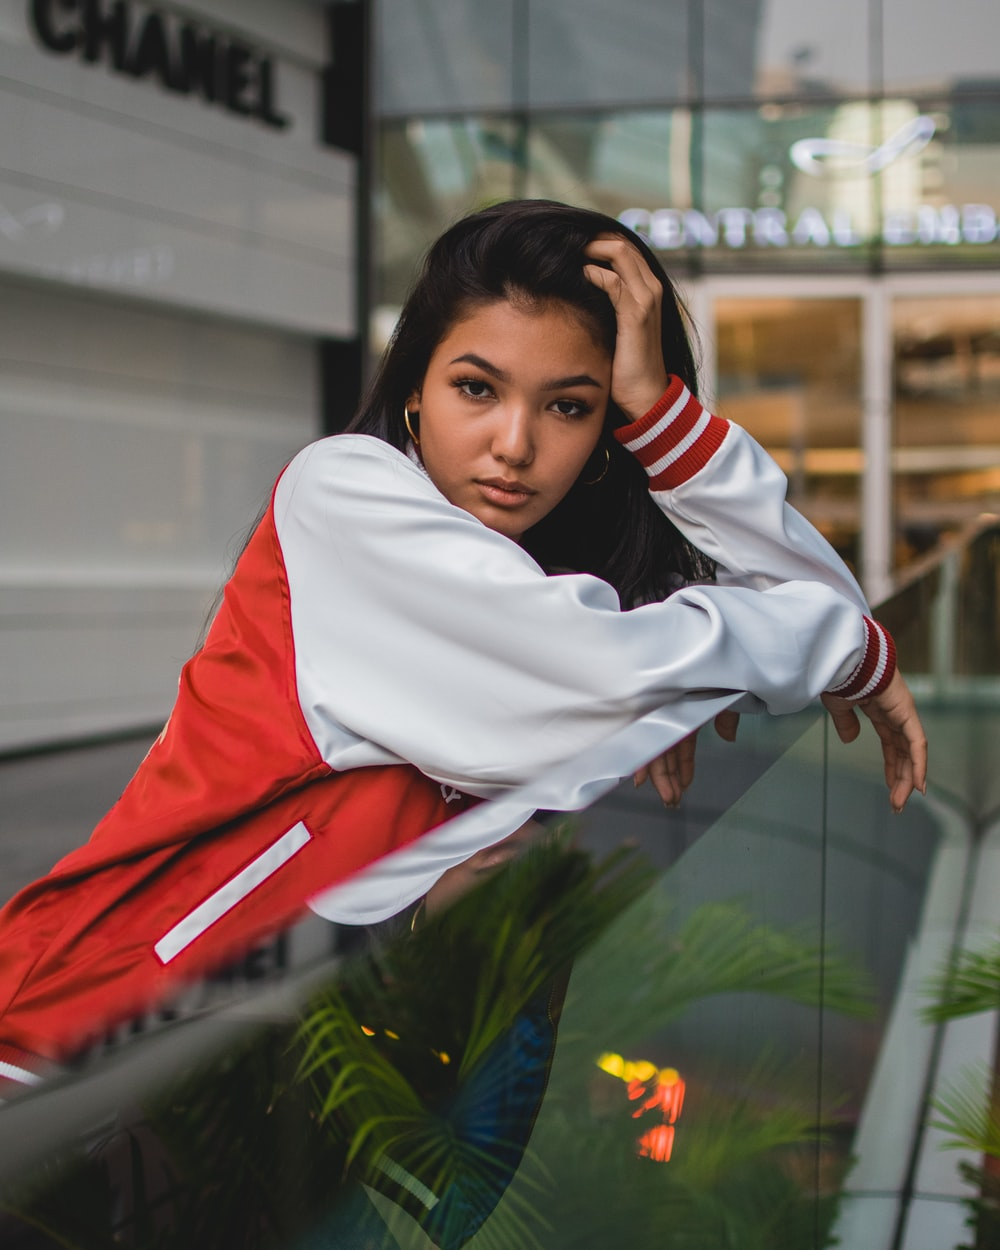 woman on red and white letterman jacket